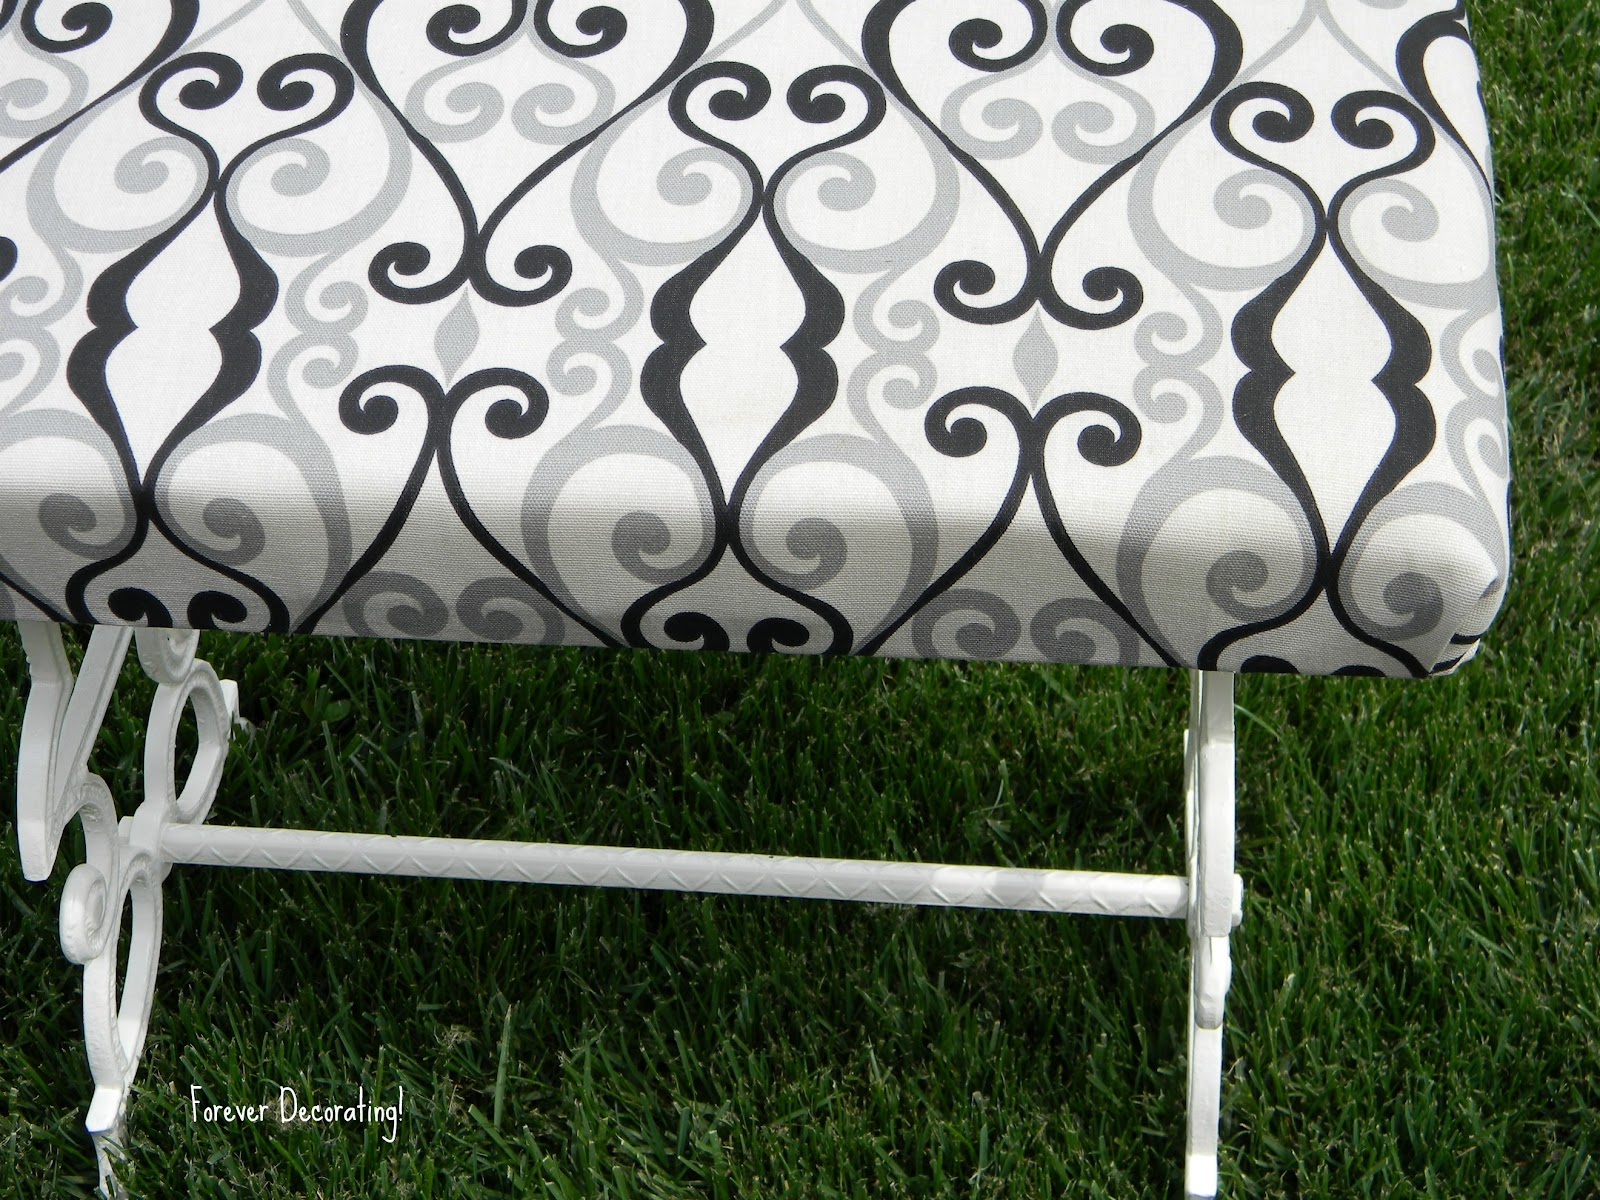 Forever Decorating!: Iron Bench!